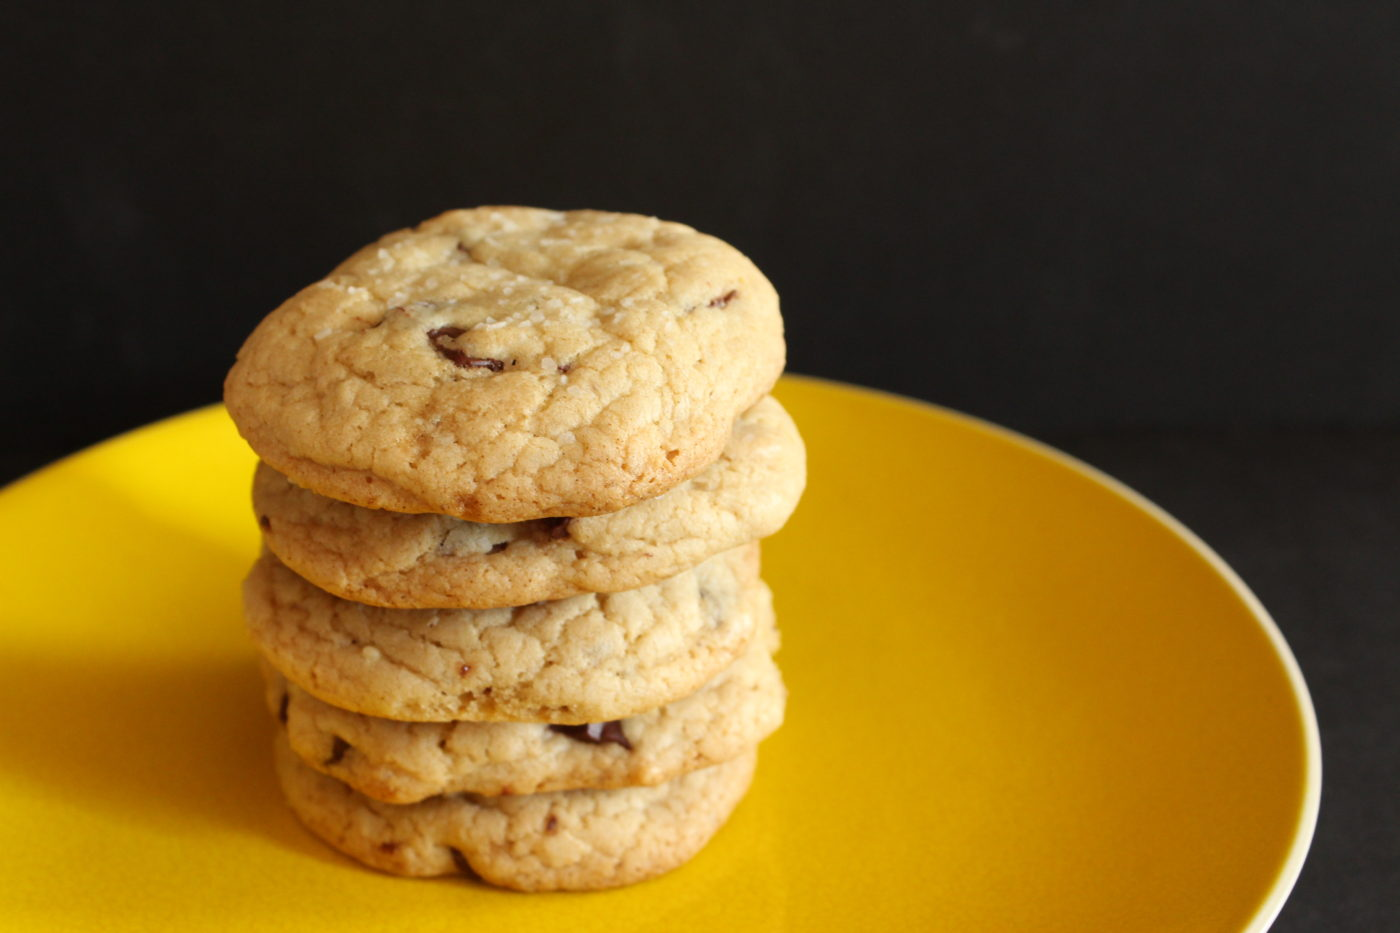 Chocolate chip cookies on yellow plate.